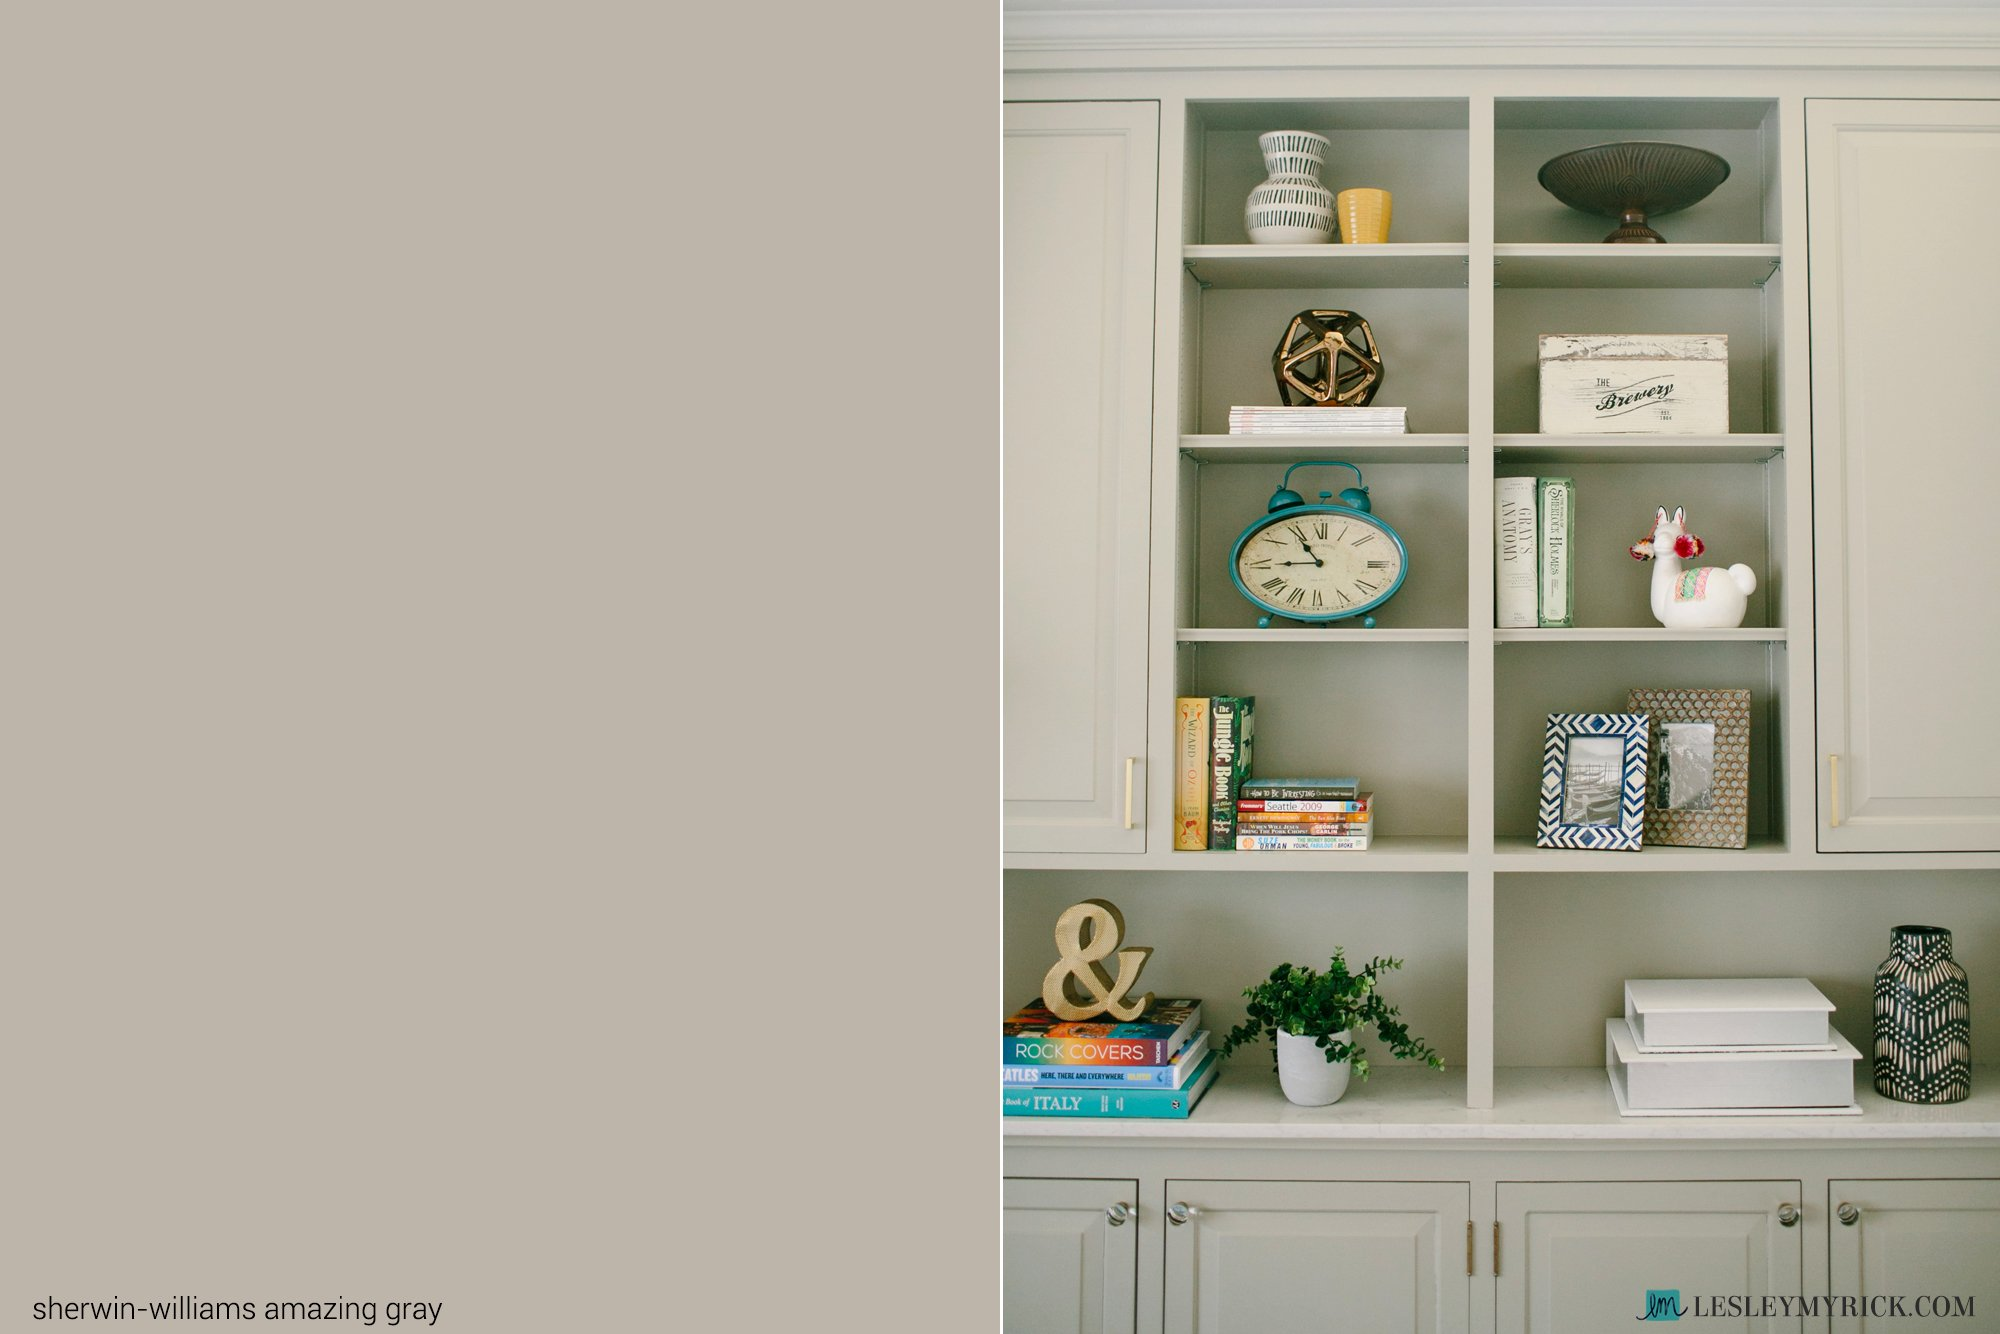 Best gray paint color: Sherwin-Williams Amazing Gray